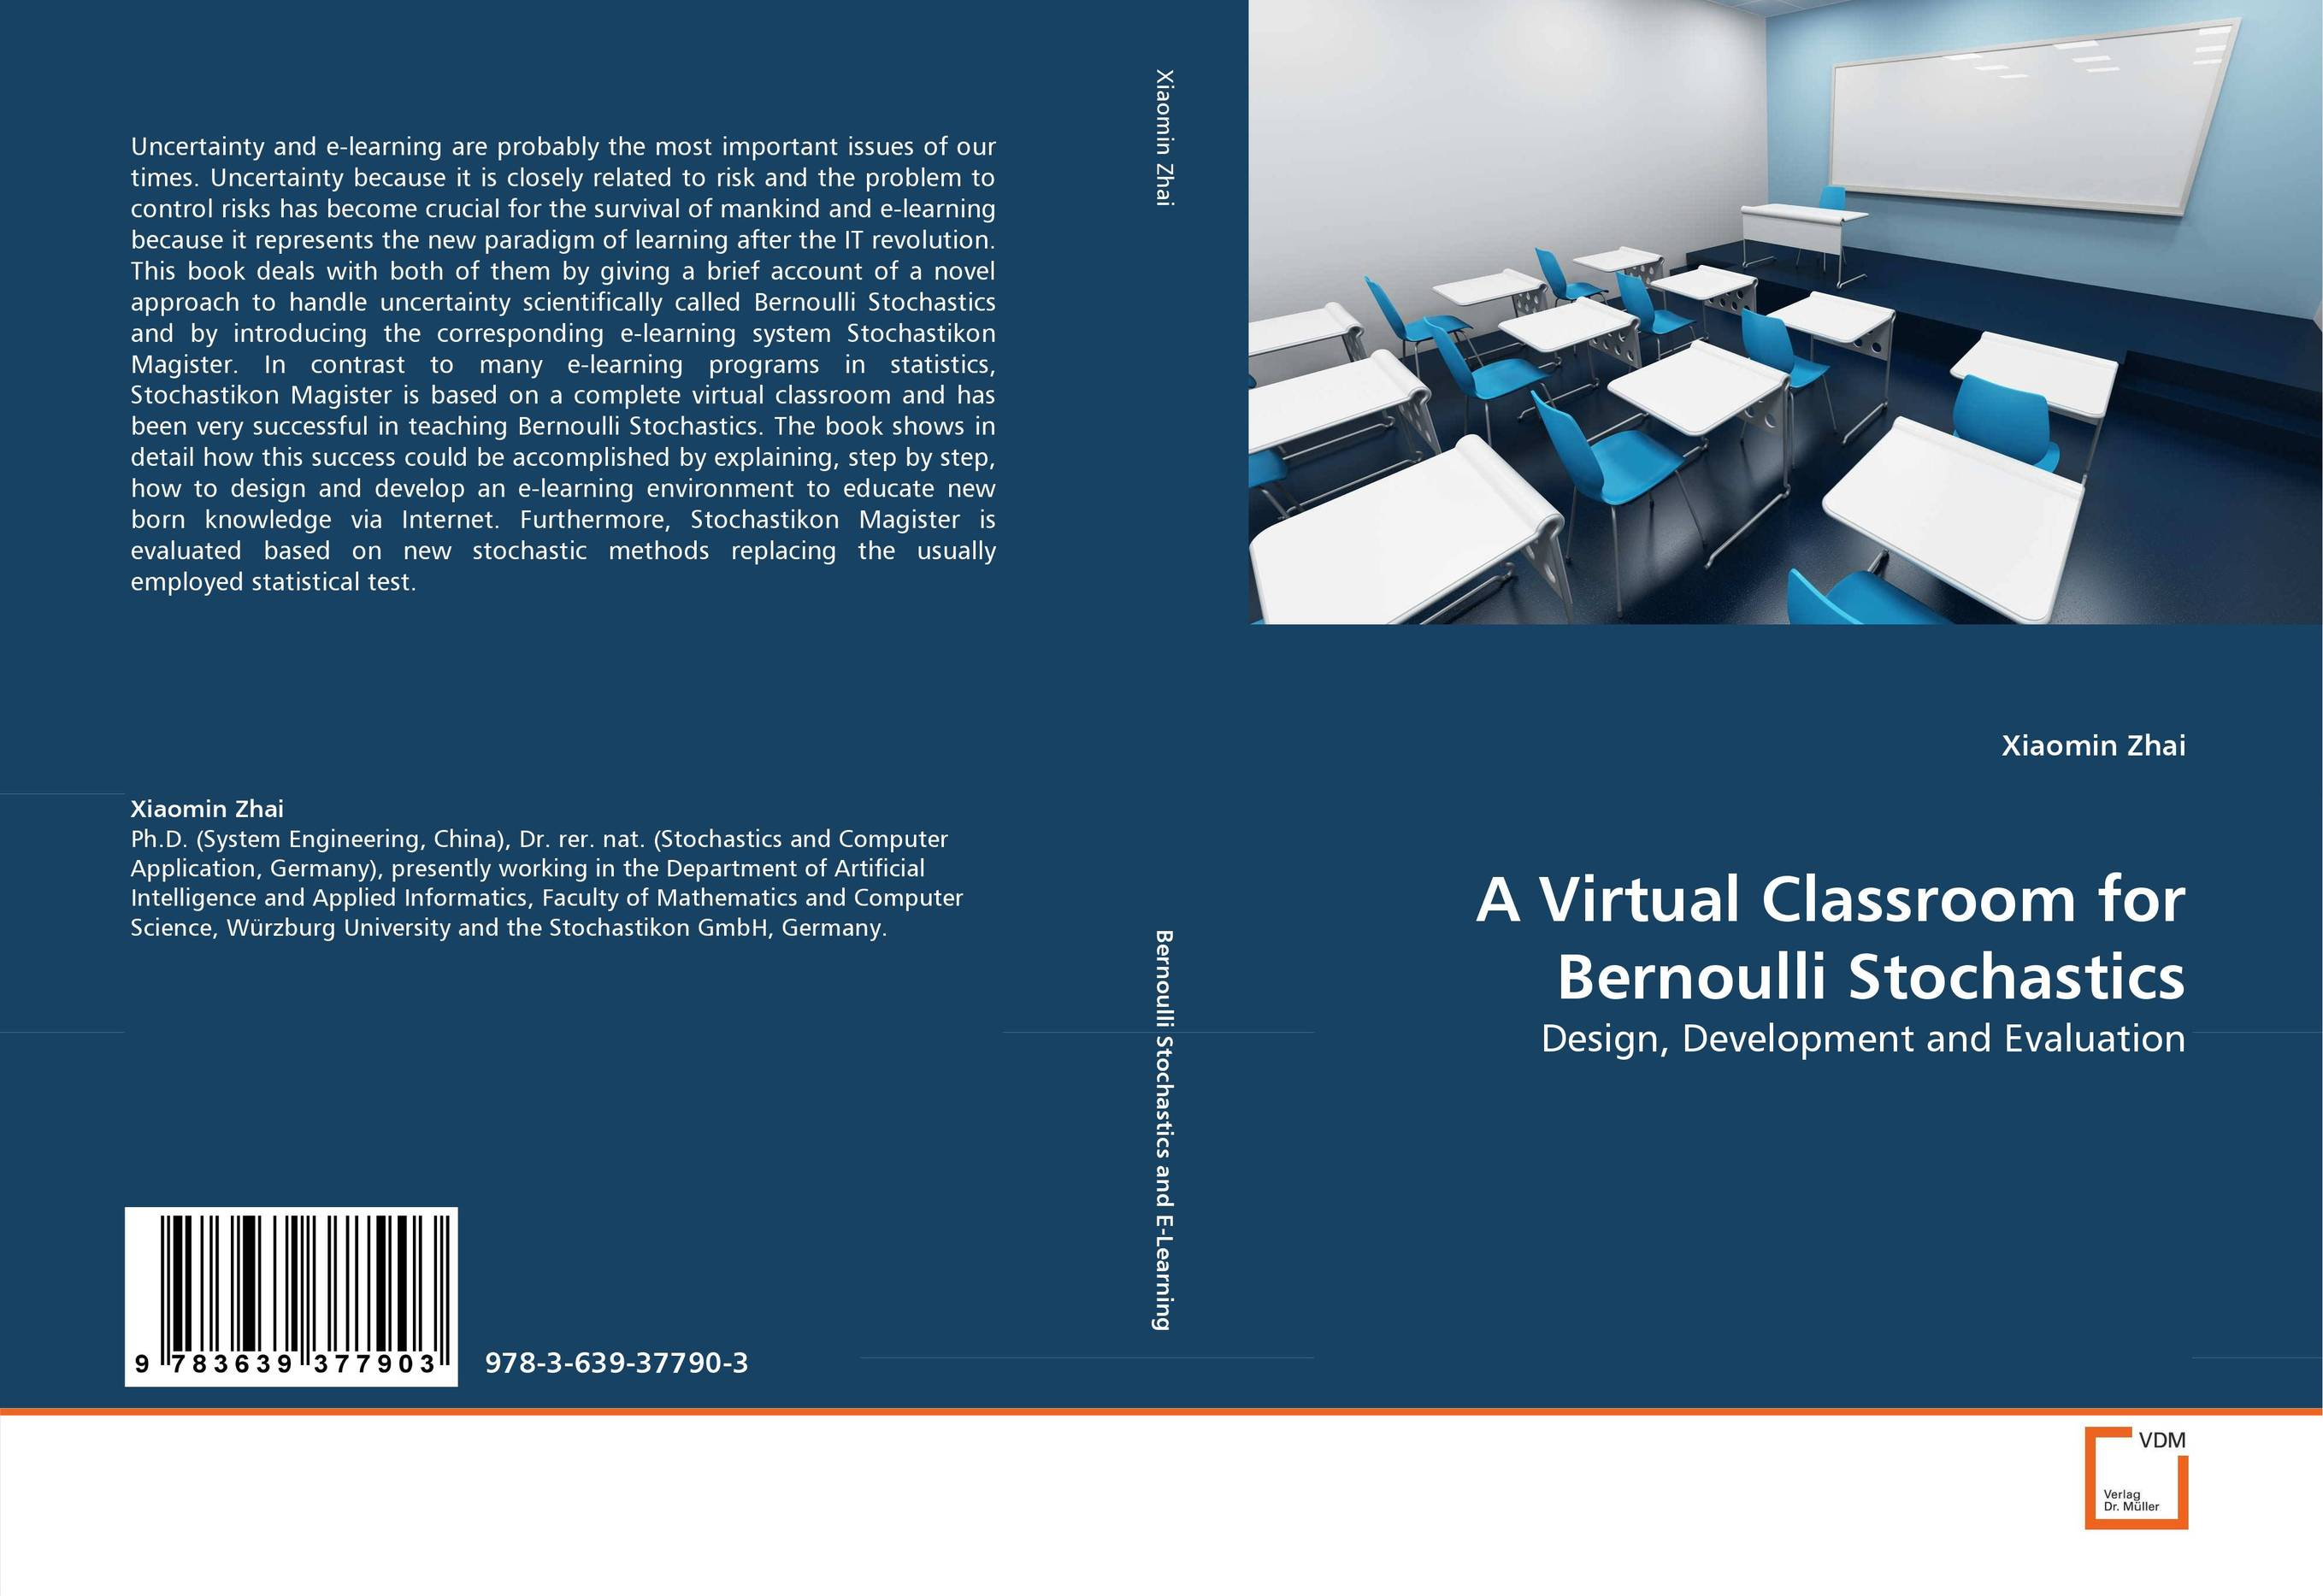 A Virtual Classroom for Bernoulli Stochastics